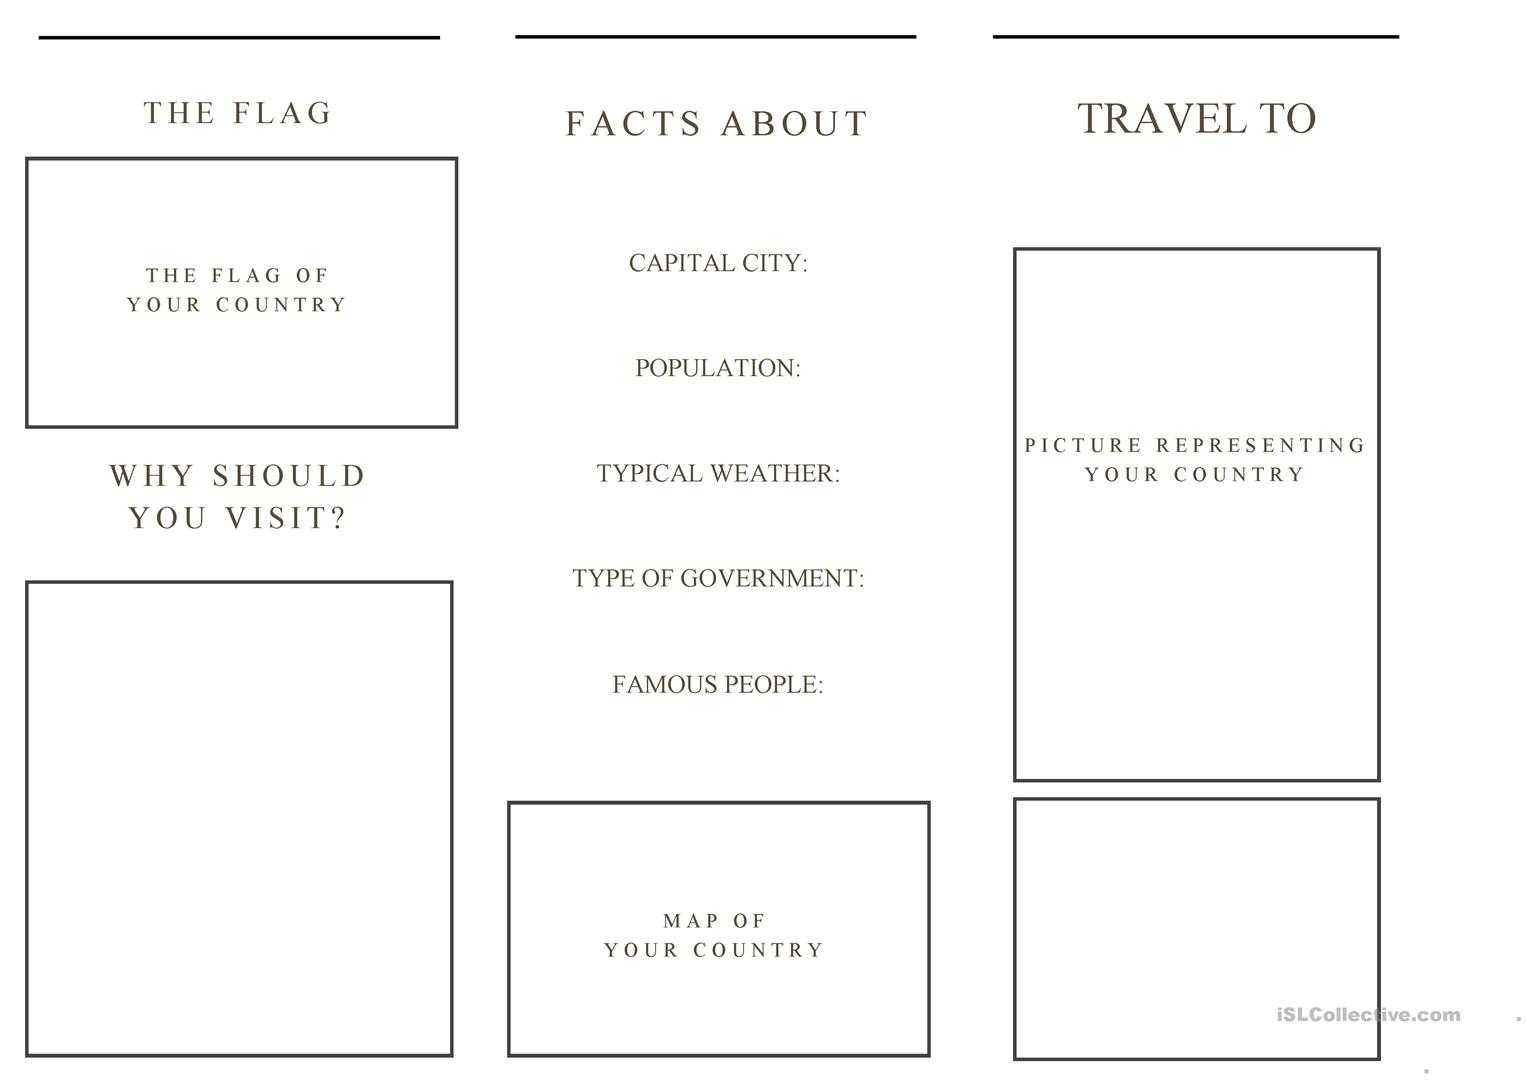 Travel Brochure Template And Example Brochure - English Esl Inside Country Brochure Template